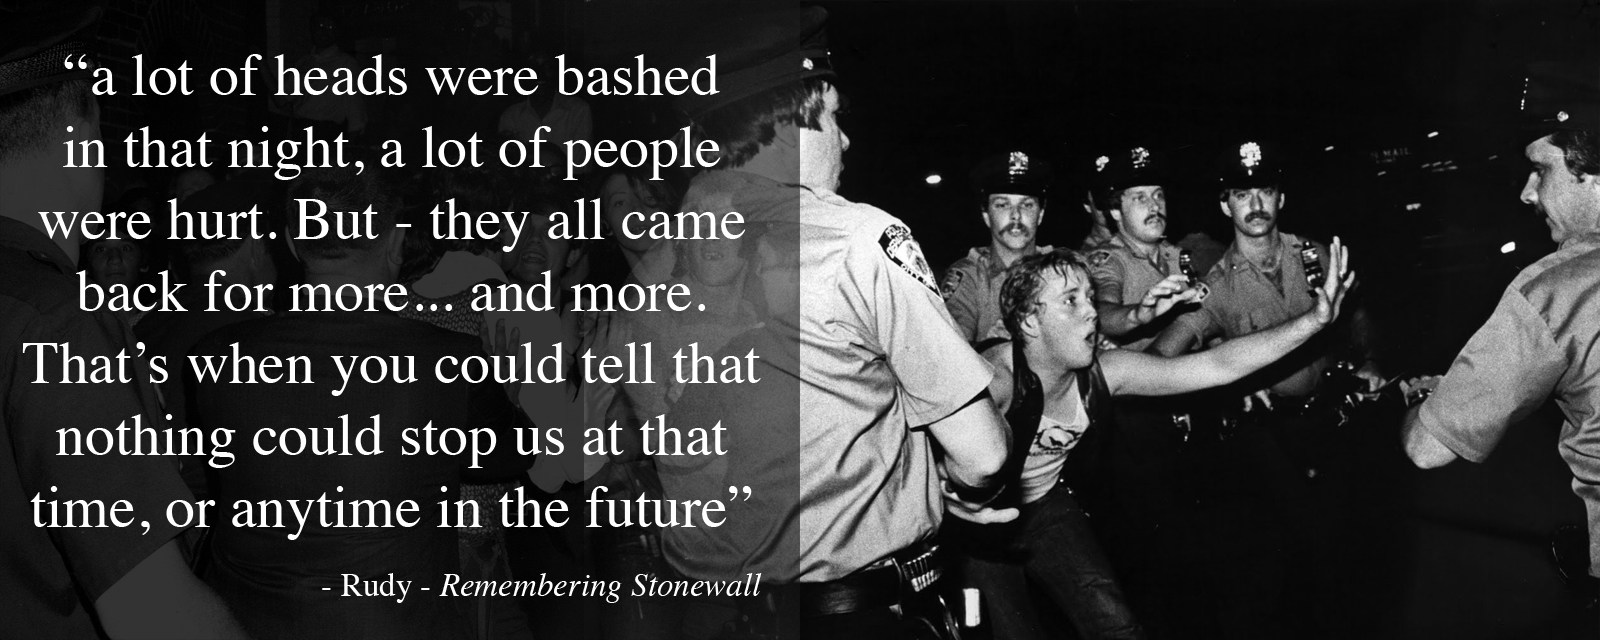 Remembering-Stonewall-Riots.jpg